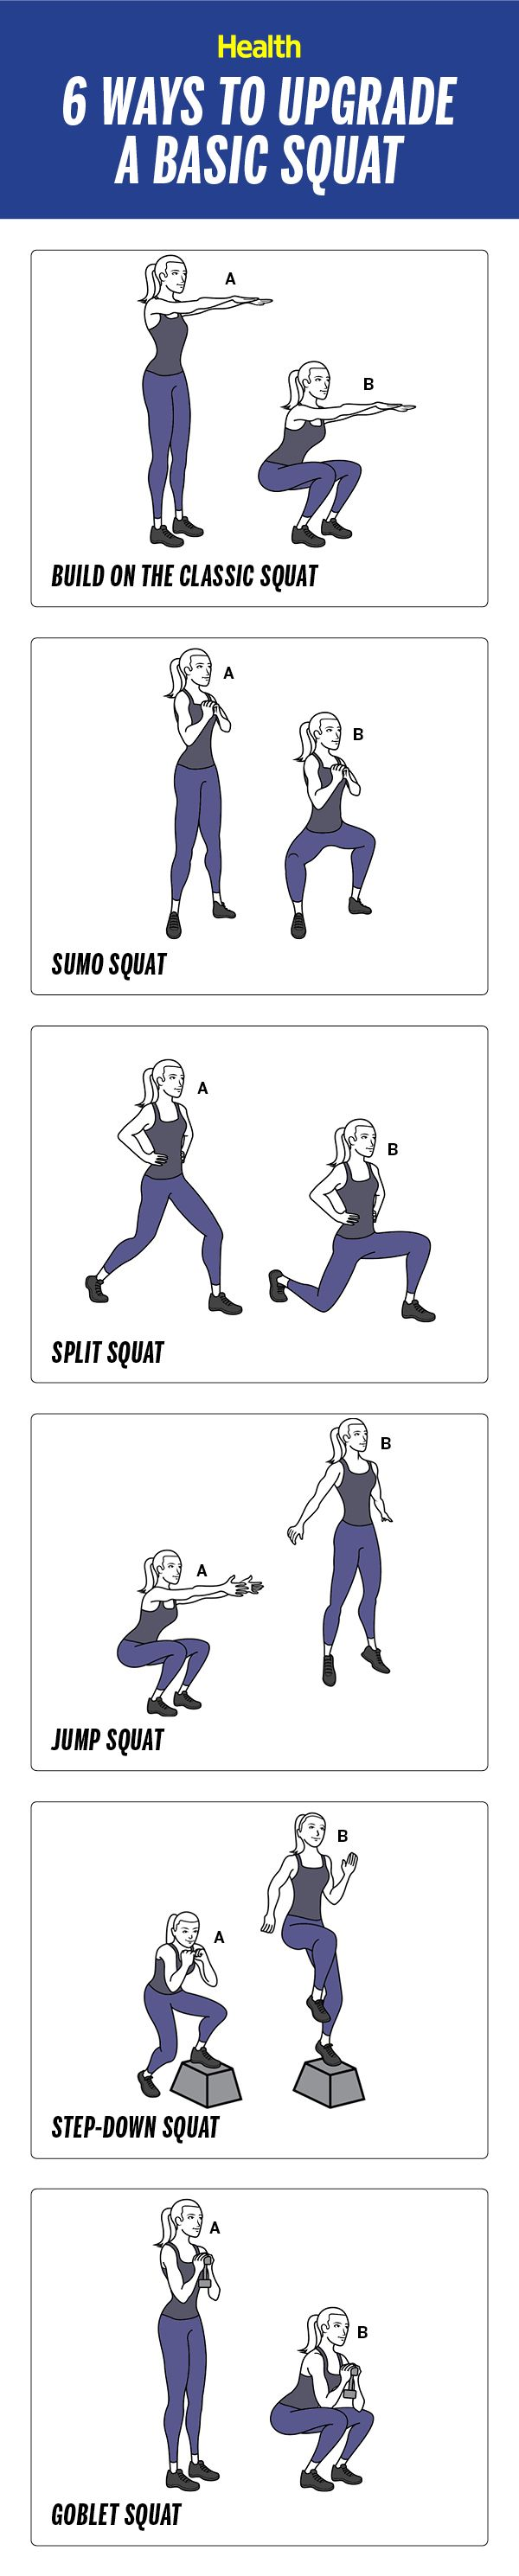 6 ways to upgrade a basic squat: Five squat variations so you can chisel your core and build a better butt | Health.com